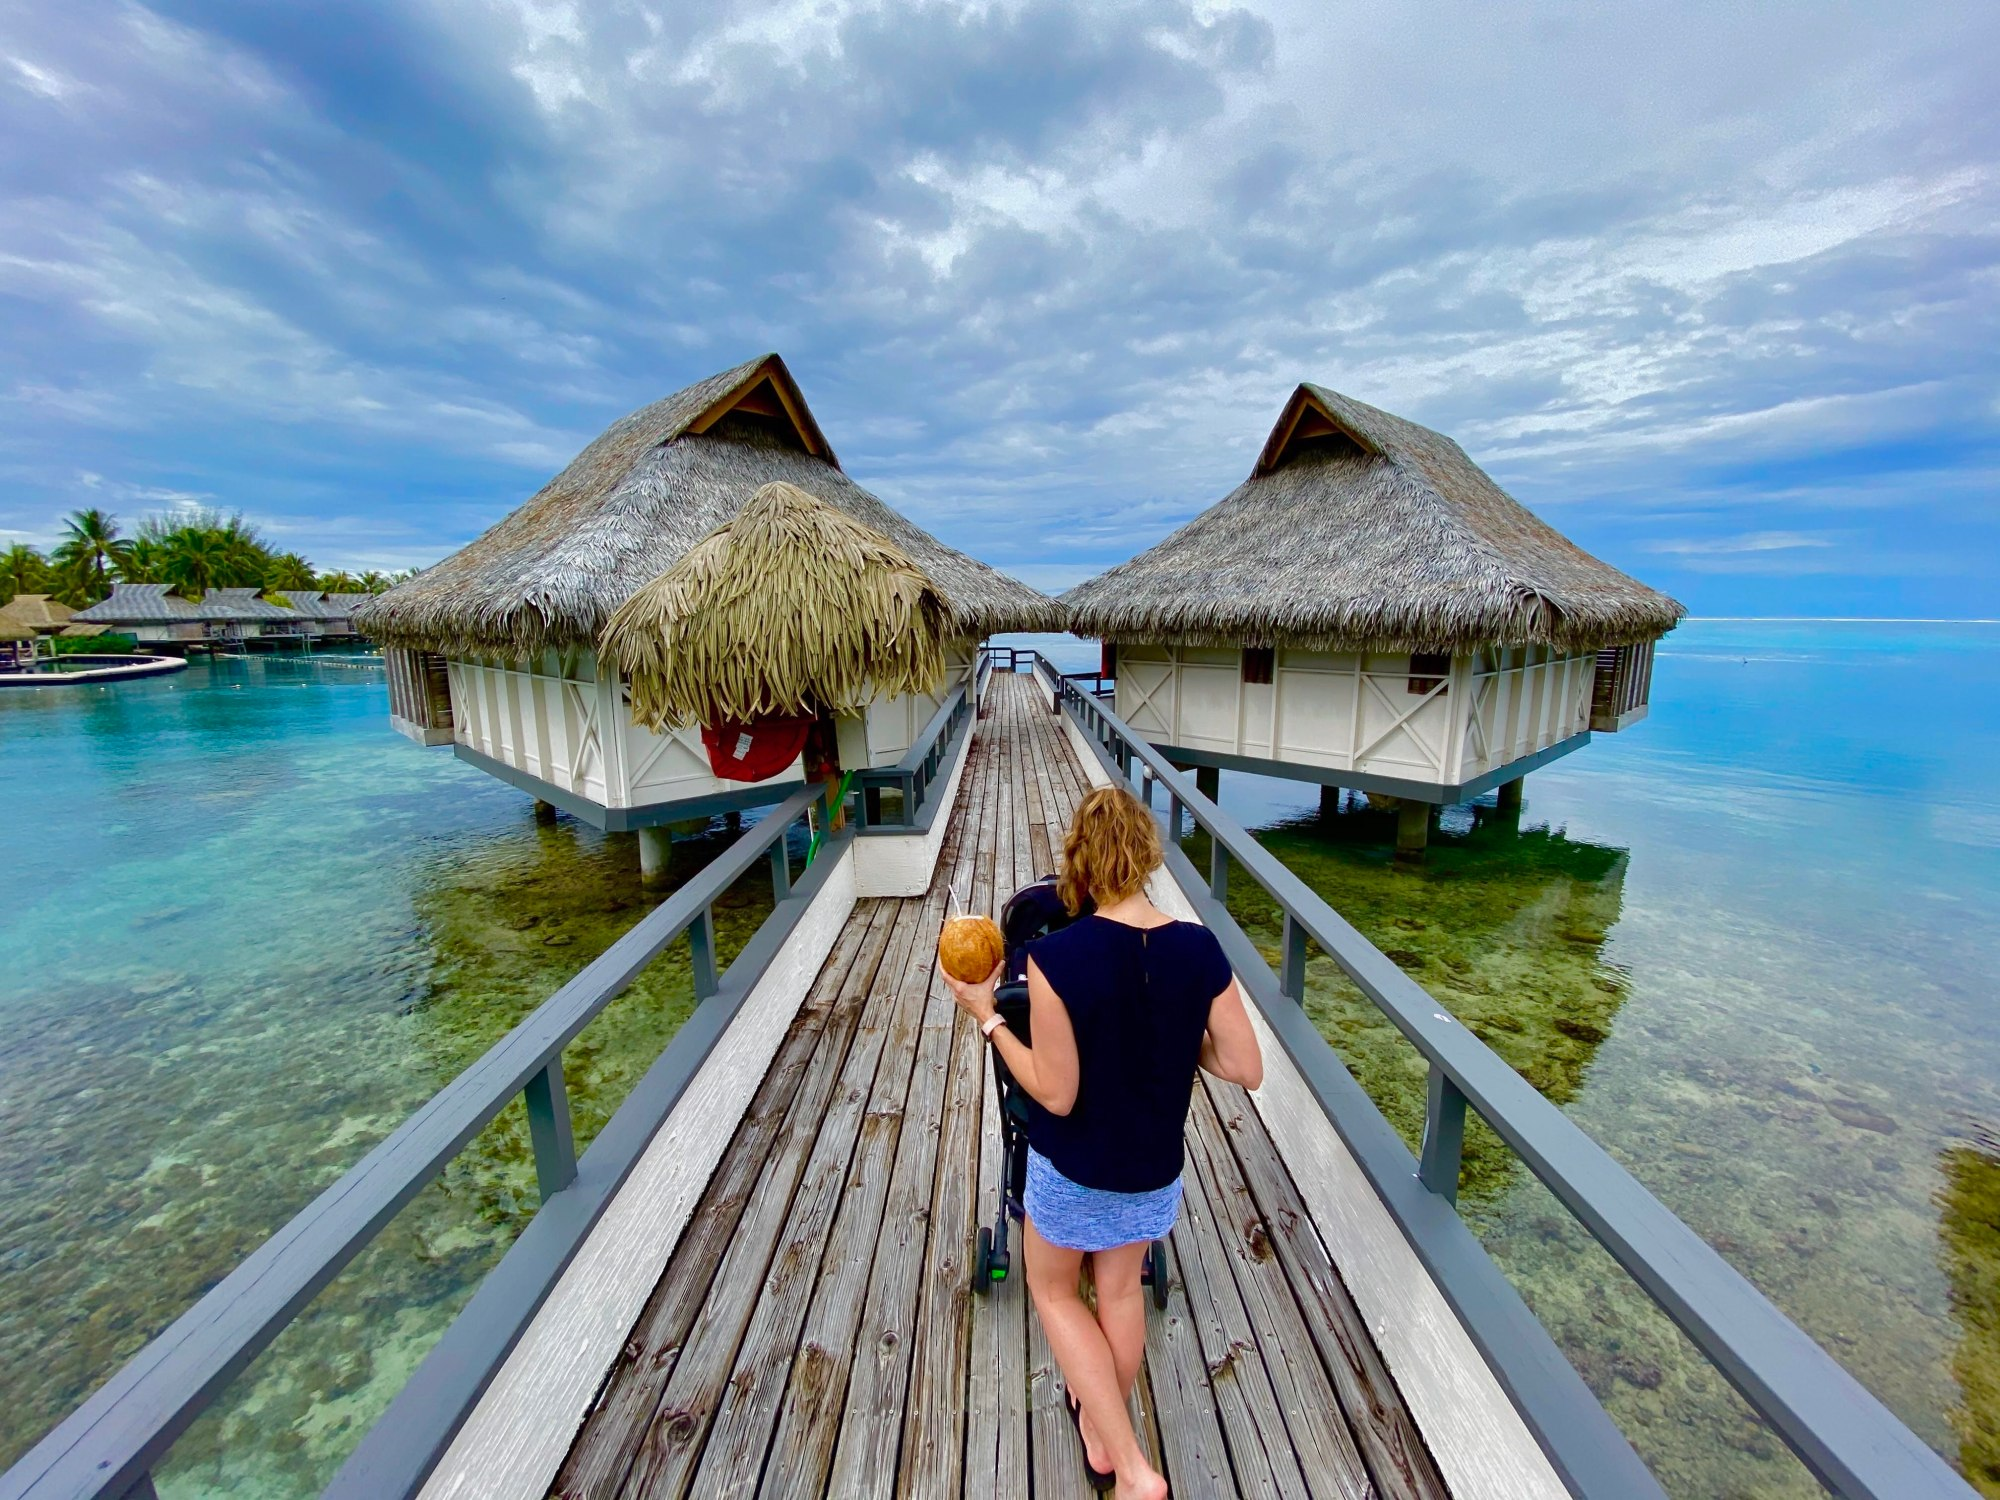 Walking out to an overwater bungalow in Moorea, French Polynesia